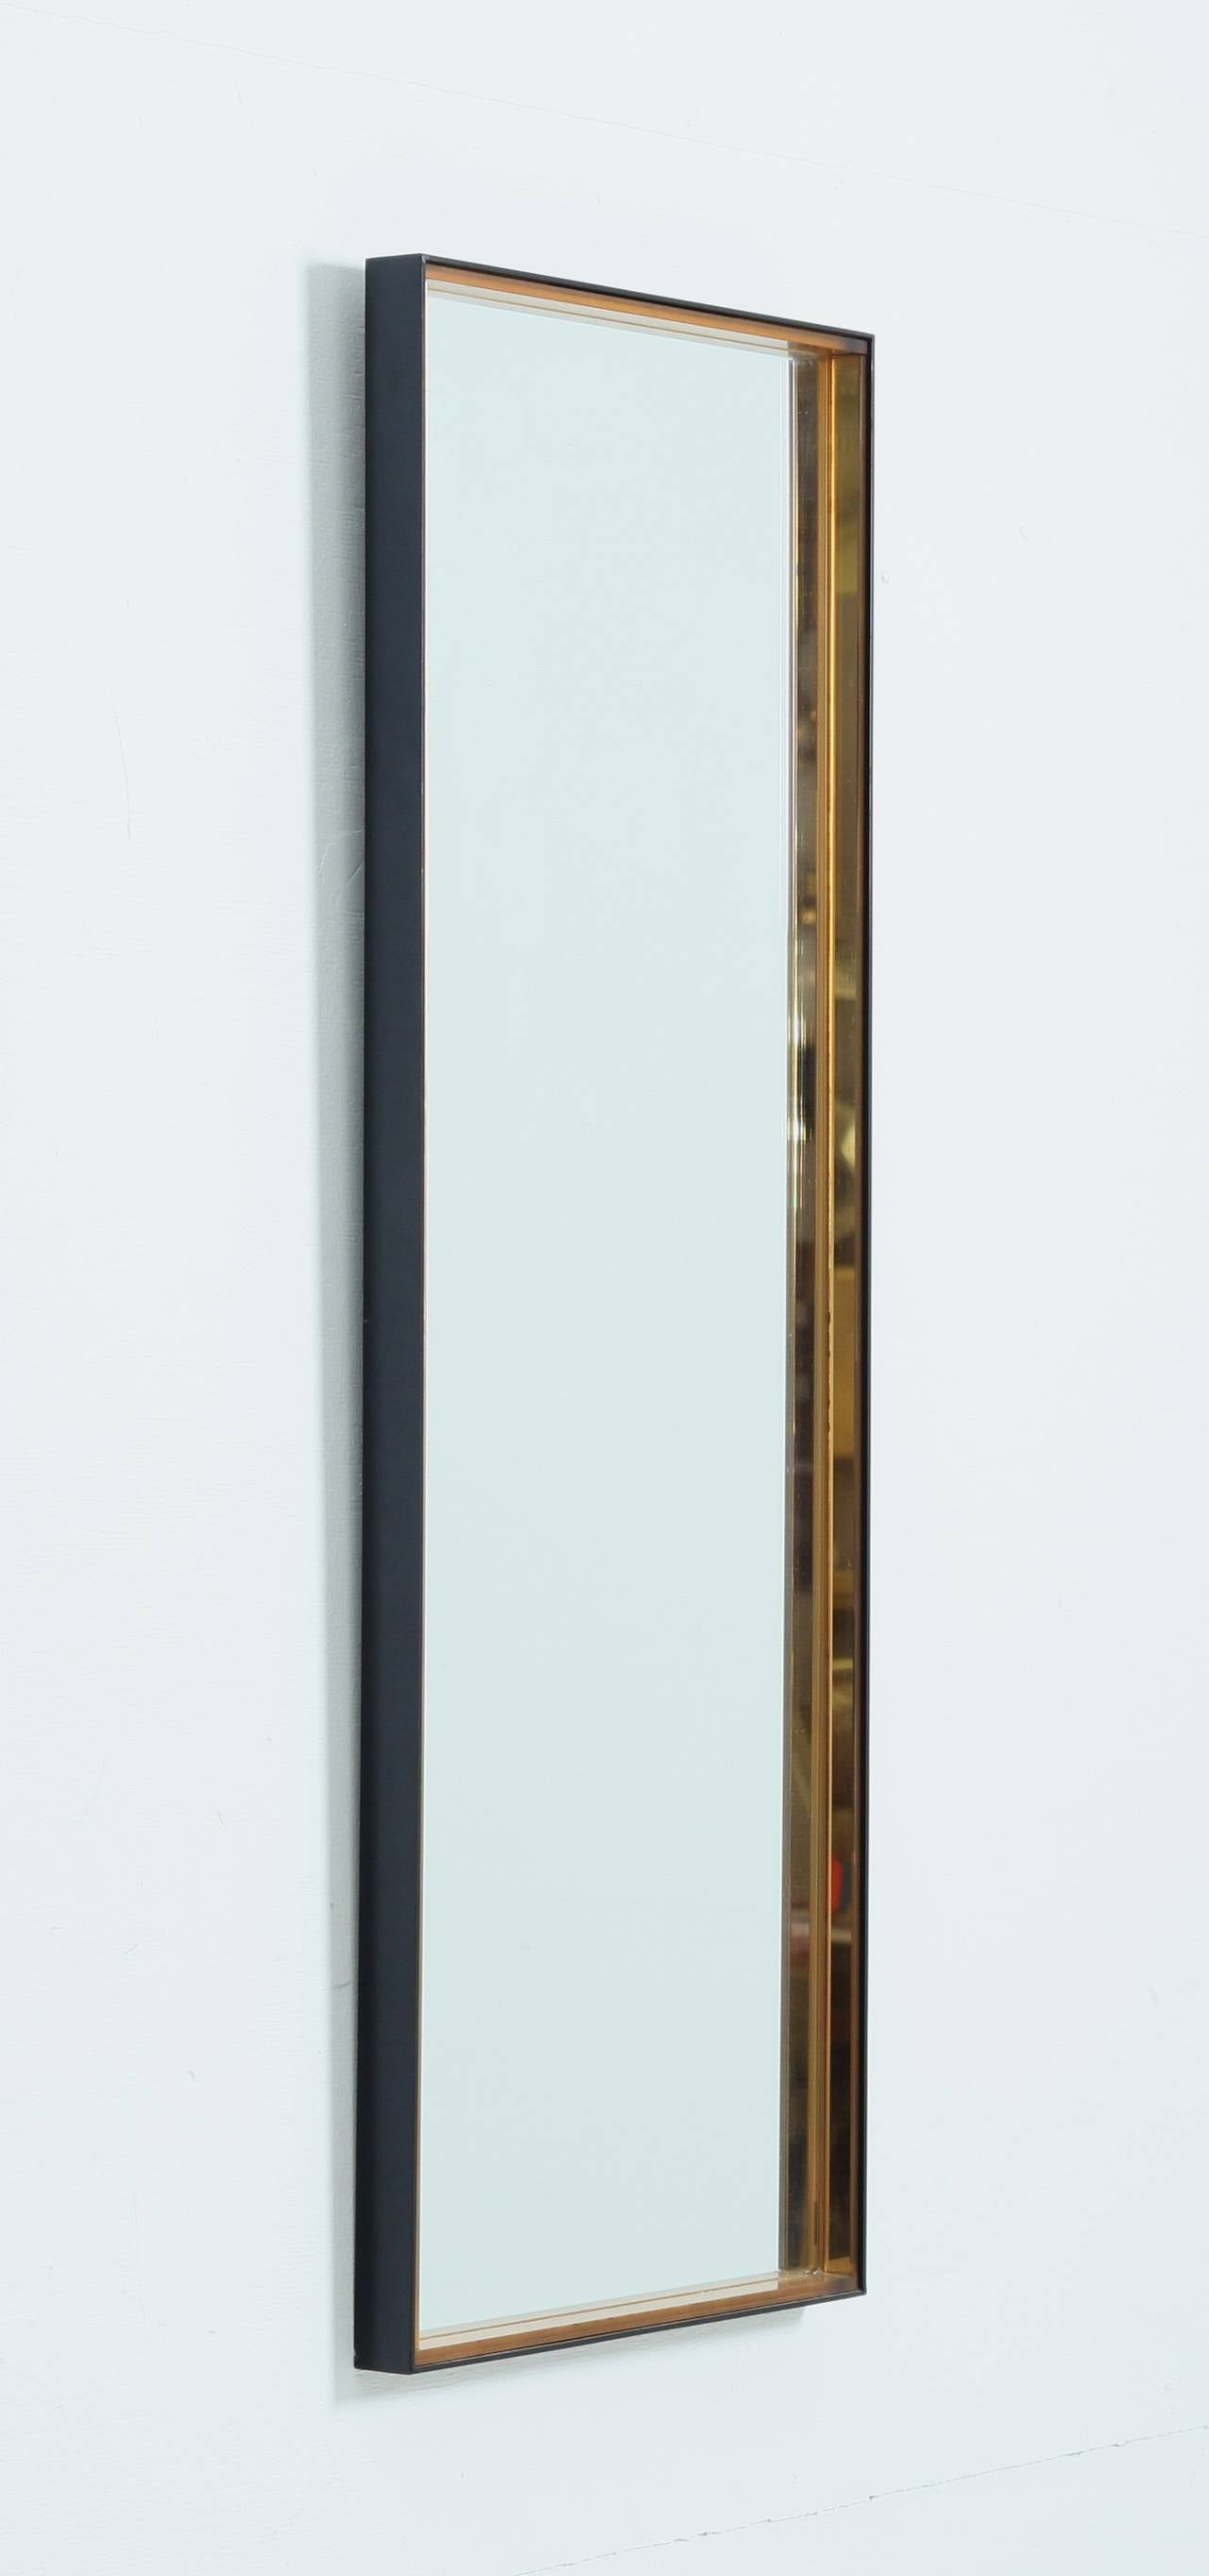 tall rectangular hallway mirror with hardened glass frame